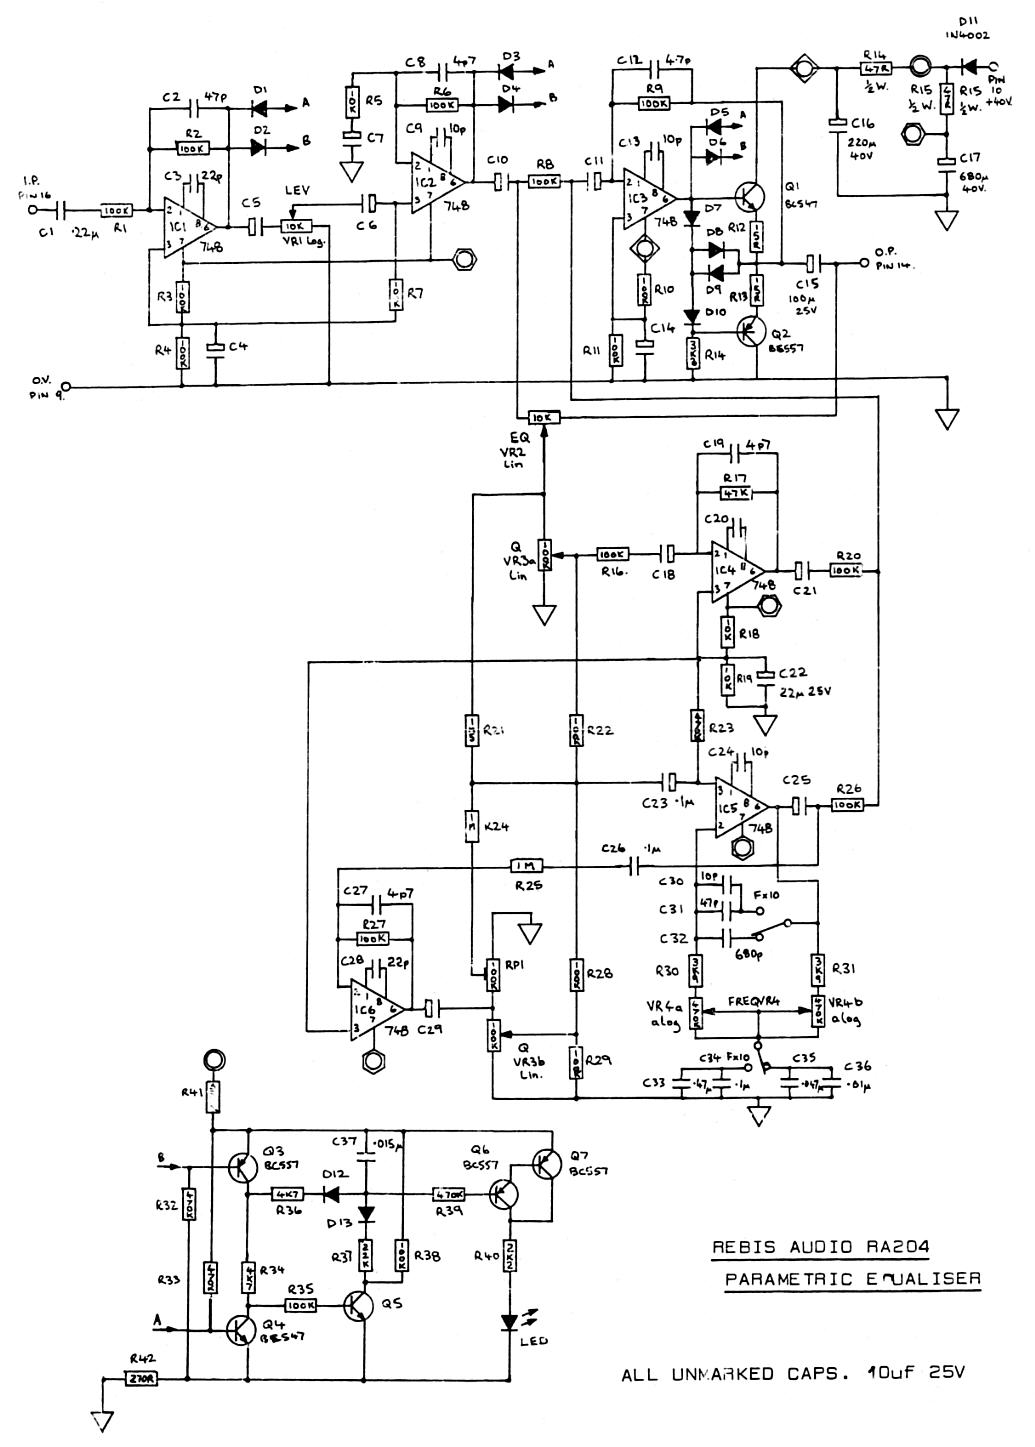 rebis audio ra204 parametric eq cct old viking pa2a wiring diagram diagram wiring diagrams for diy viking 0322-06 wiring diagram at readyjetset.co